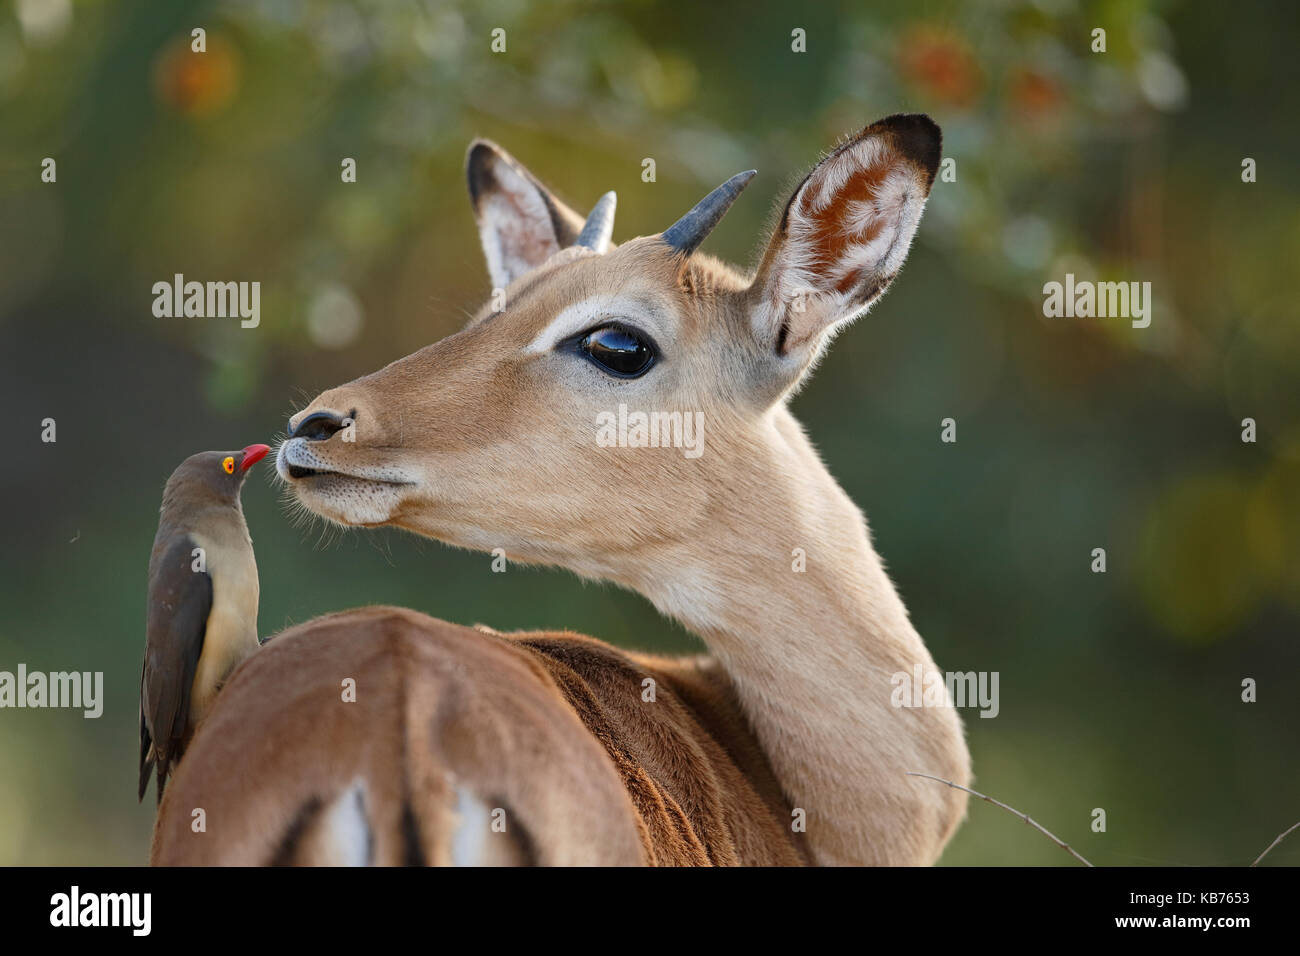 Impala (Aepyceros melampus) looking at Red-billed Oxpecker (Buphagus erythrorhynchus), South Africa, Mpumalanga, - Stock Image